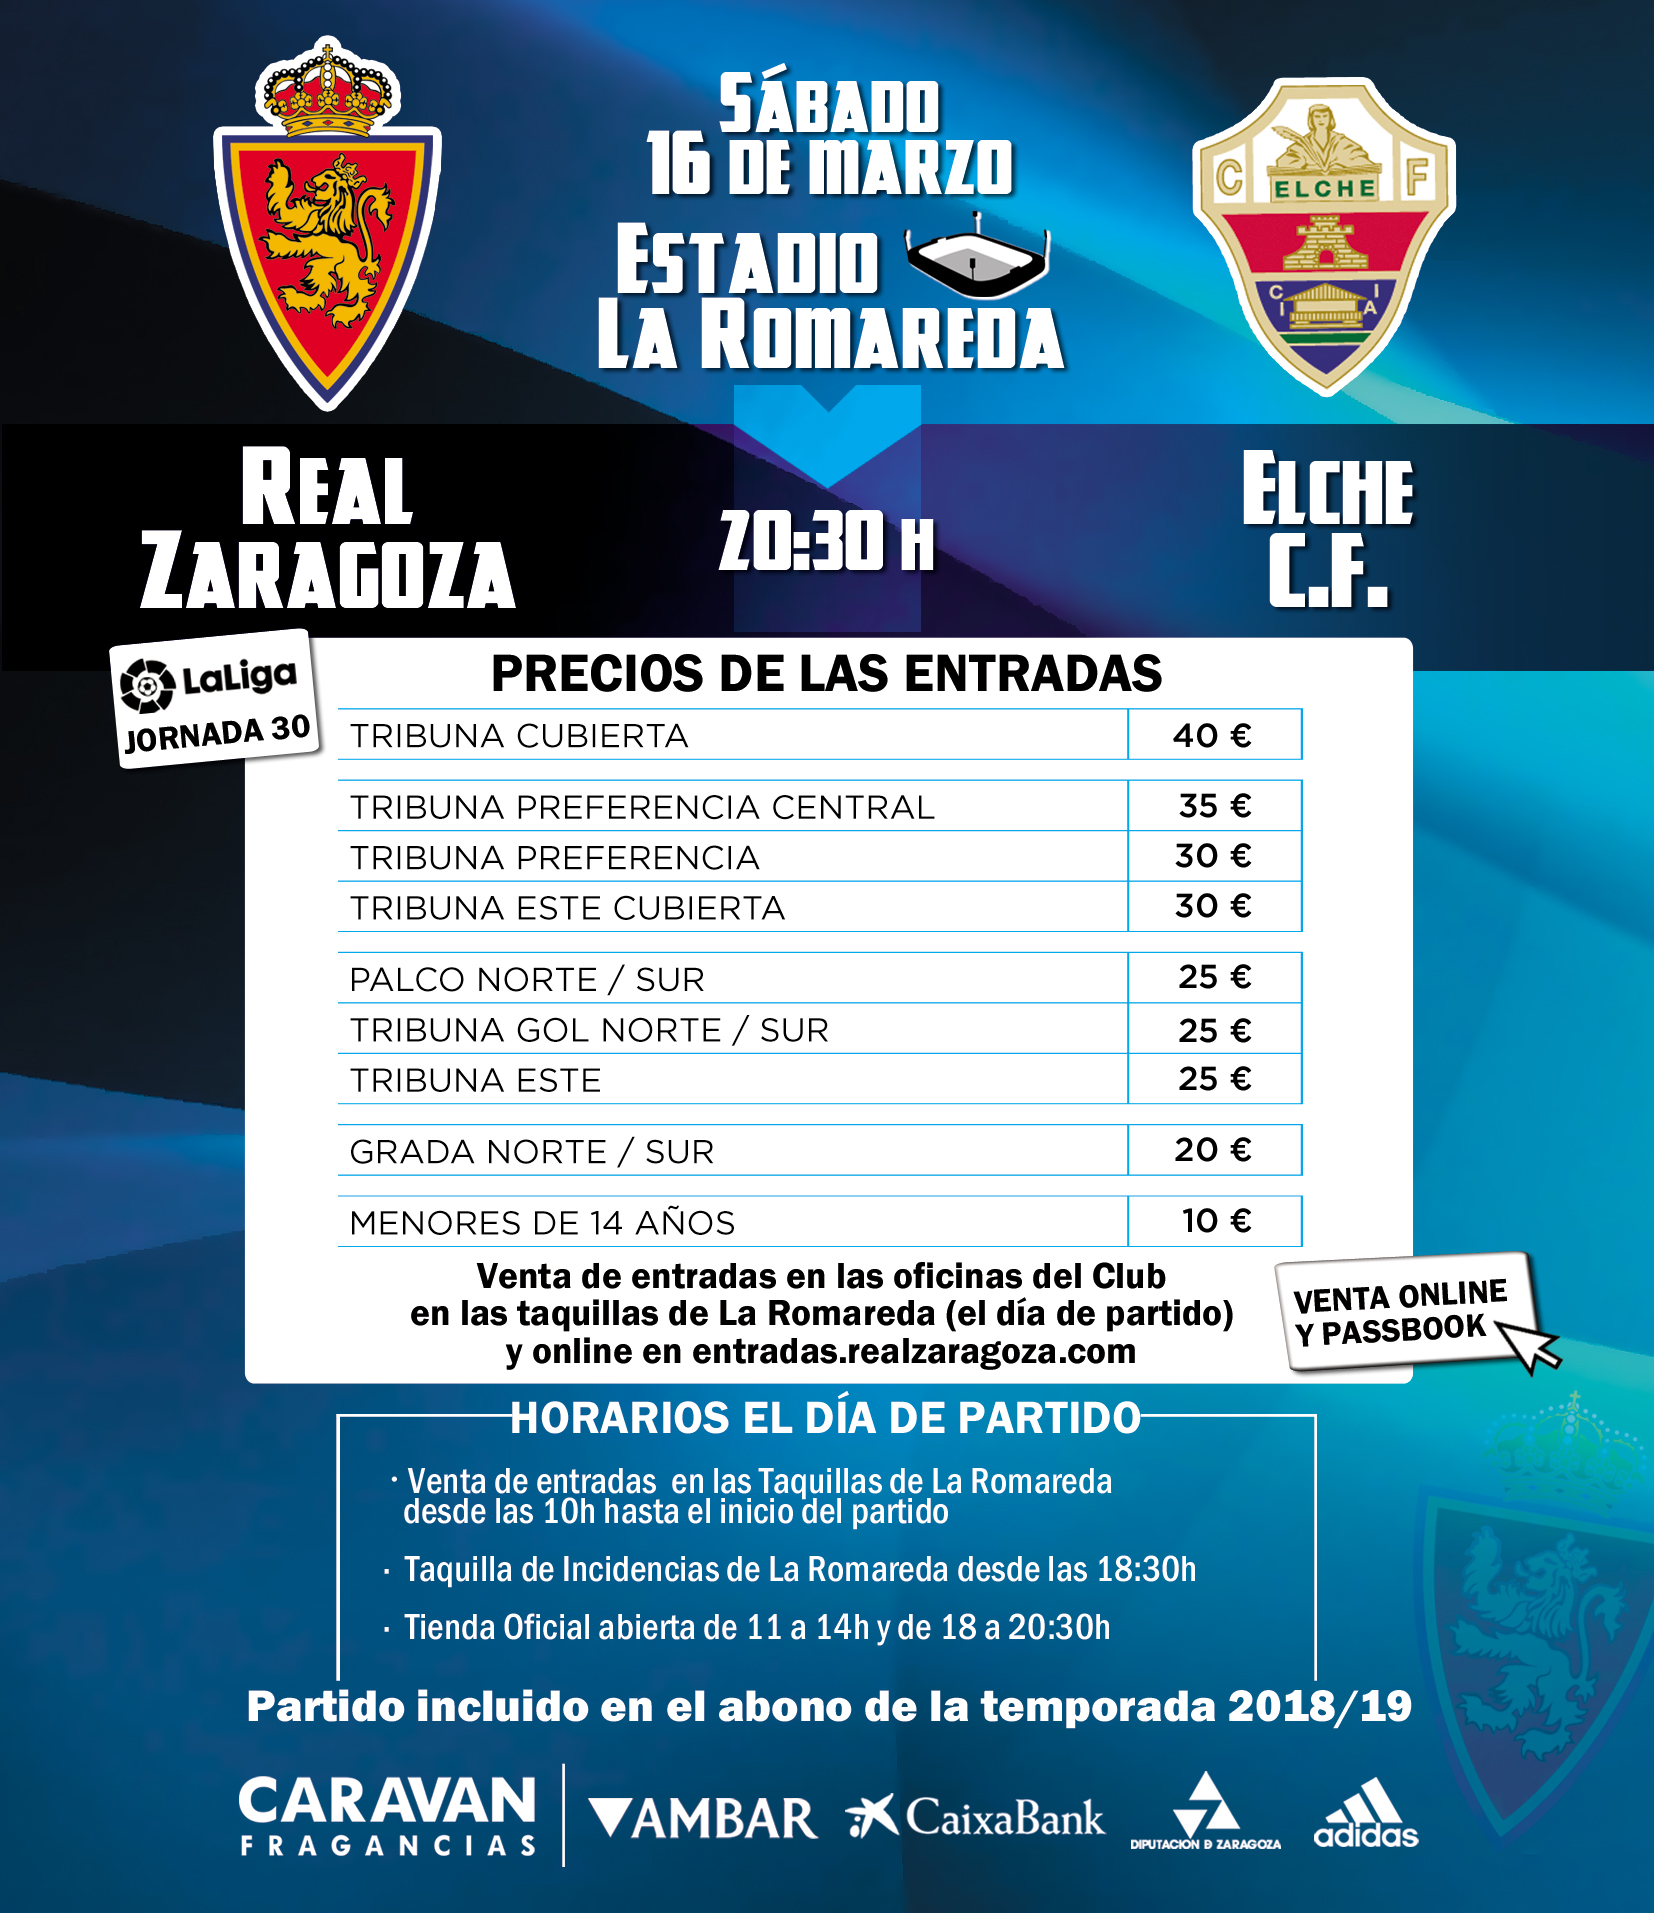 REAL ZARAGOZA VS ELCHE CF